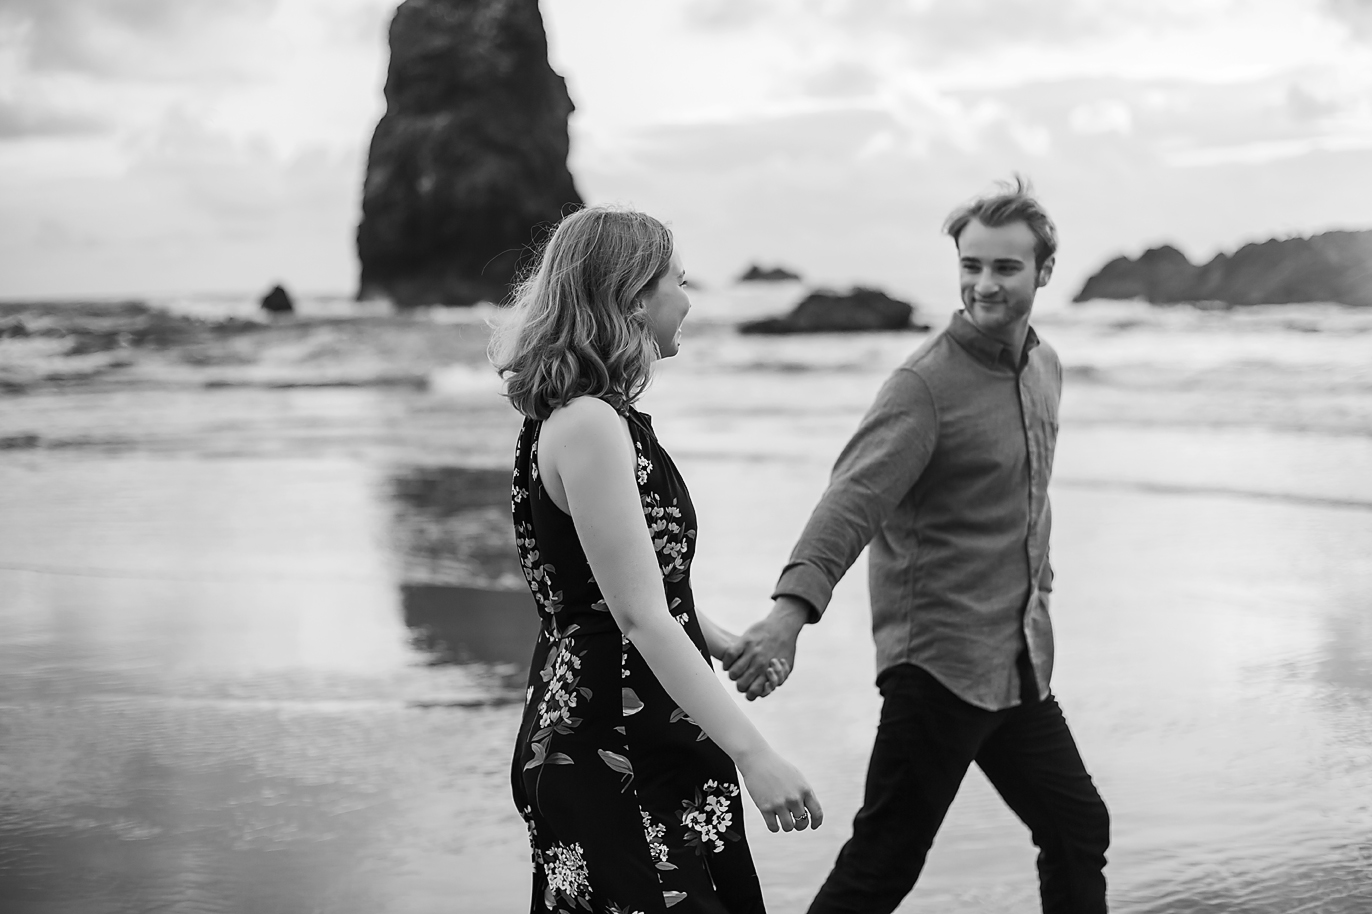 Amanda + Matt - Oregon Coast Engagement Photographer - Destination Elopement Photographer - Emily & Co. Photography (3).jpg